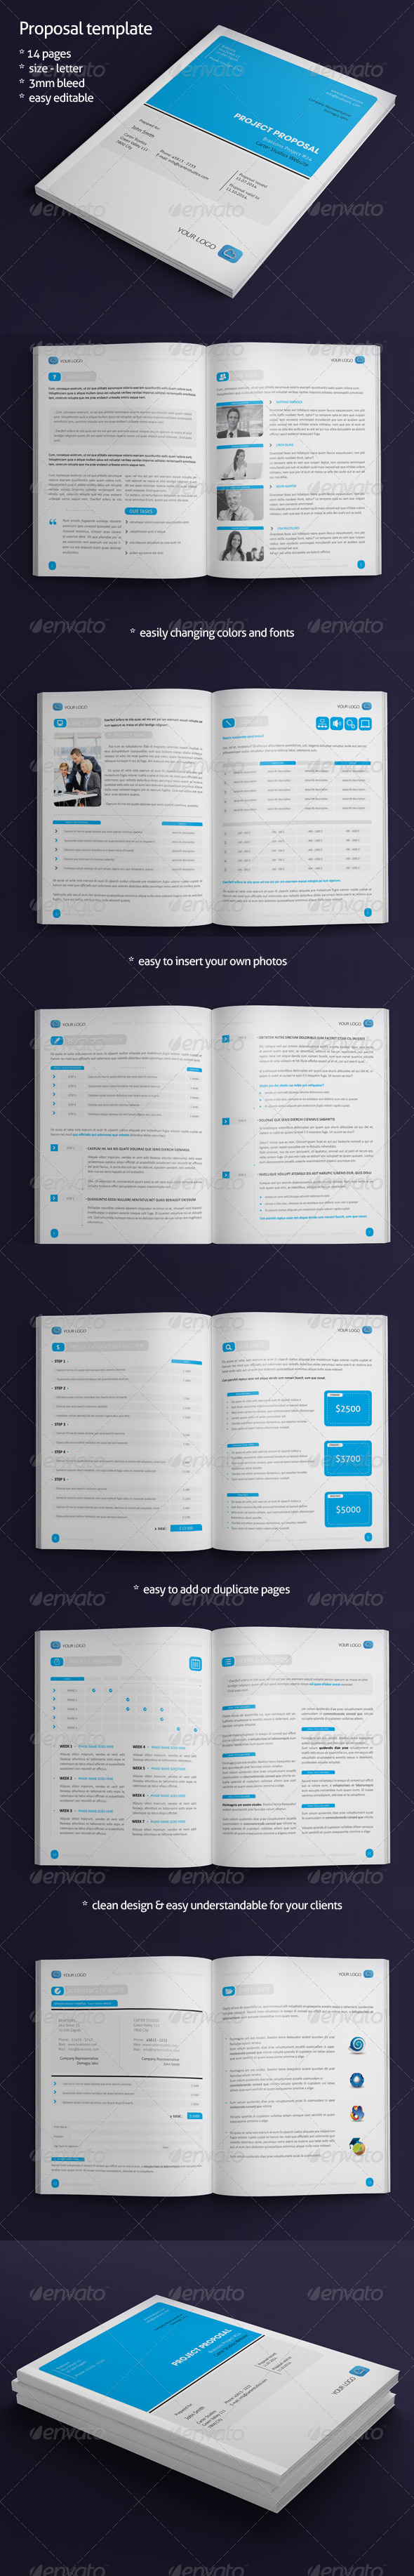 GraphicRiver Proposal Template 7195235